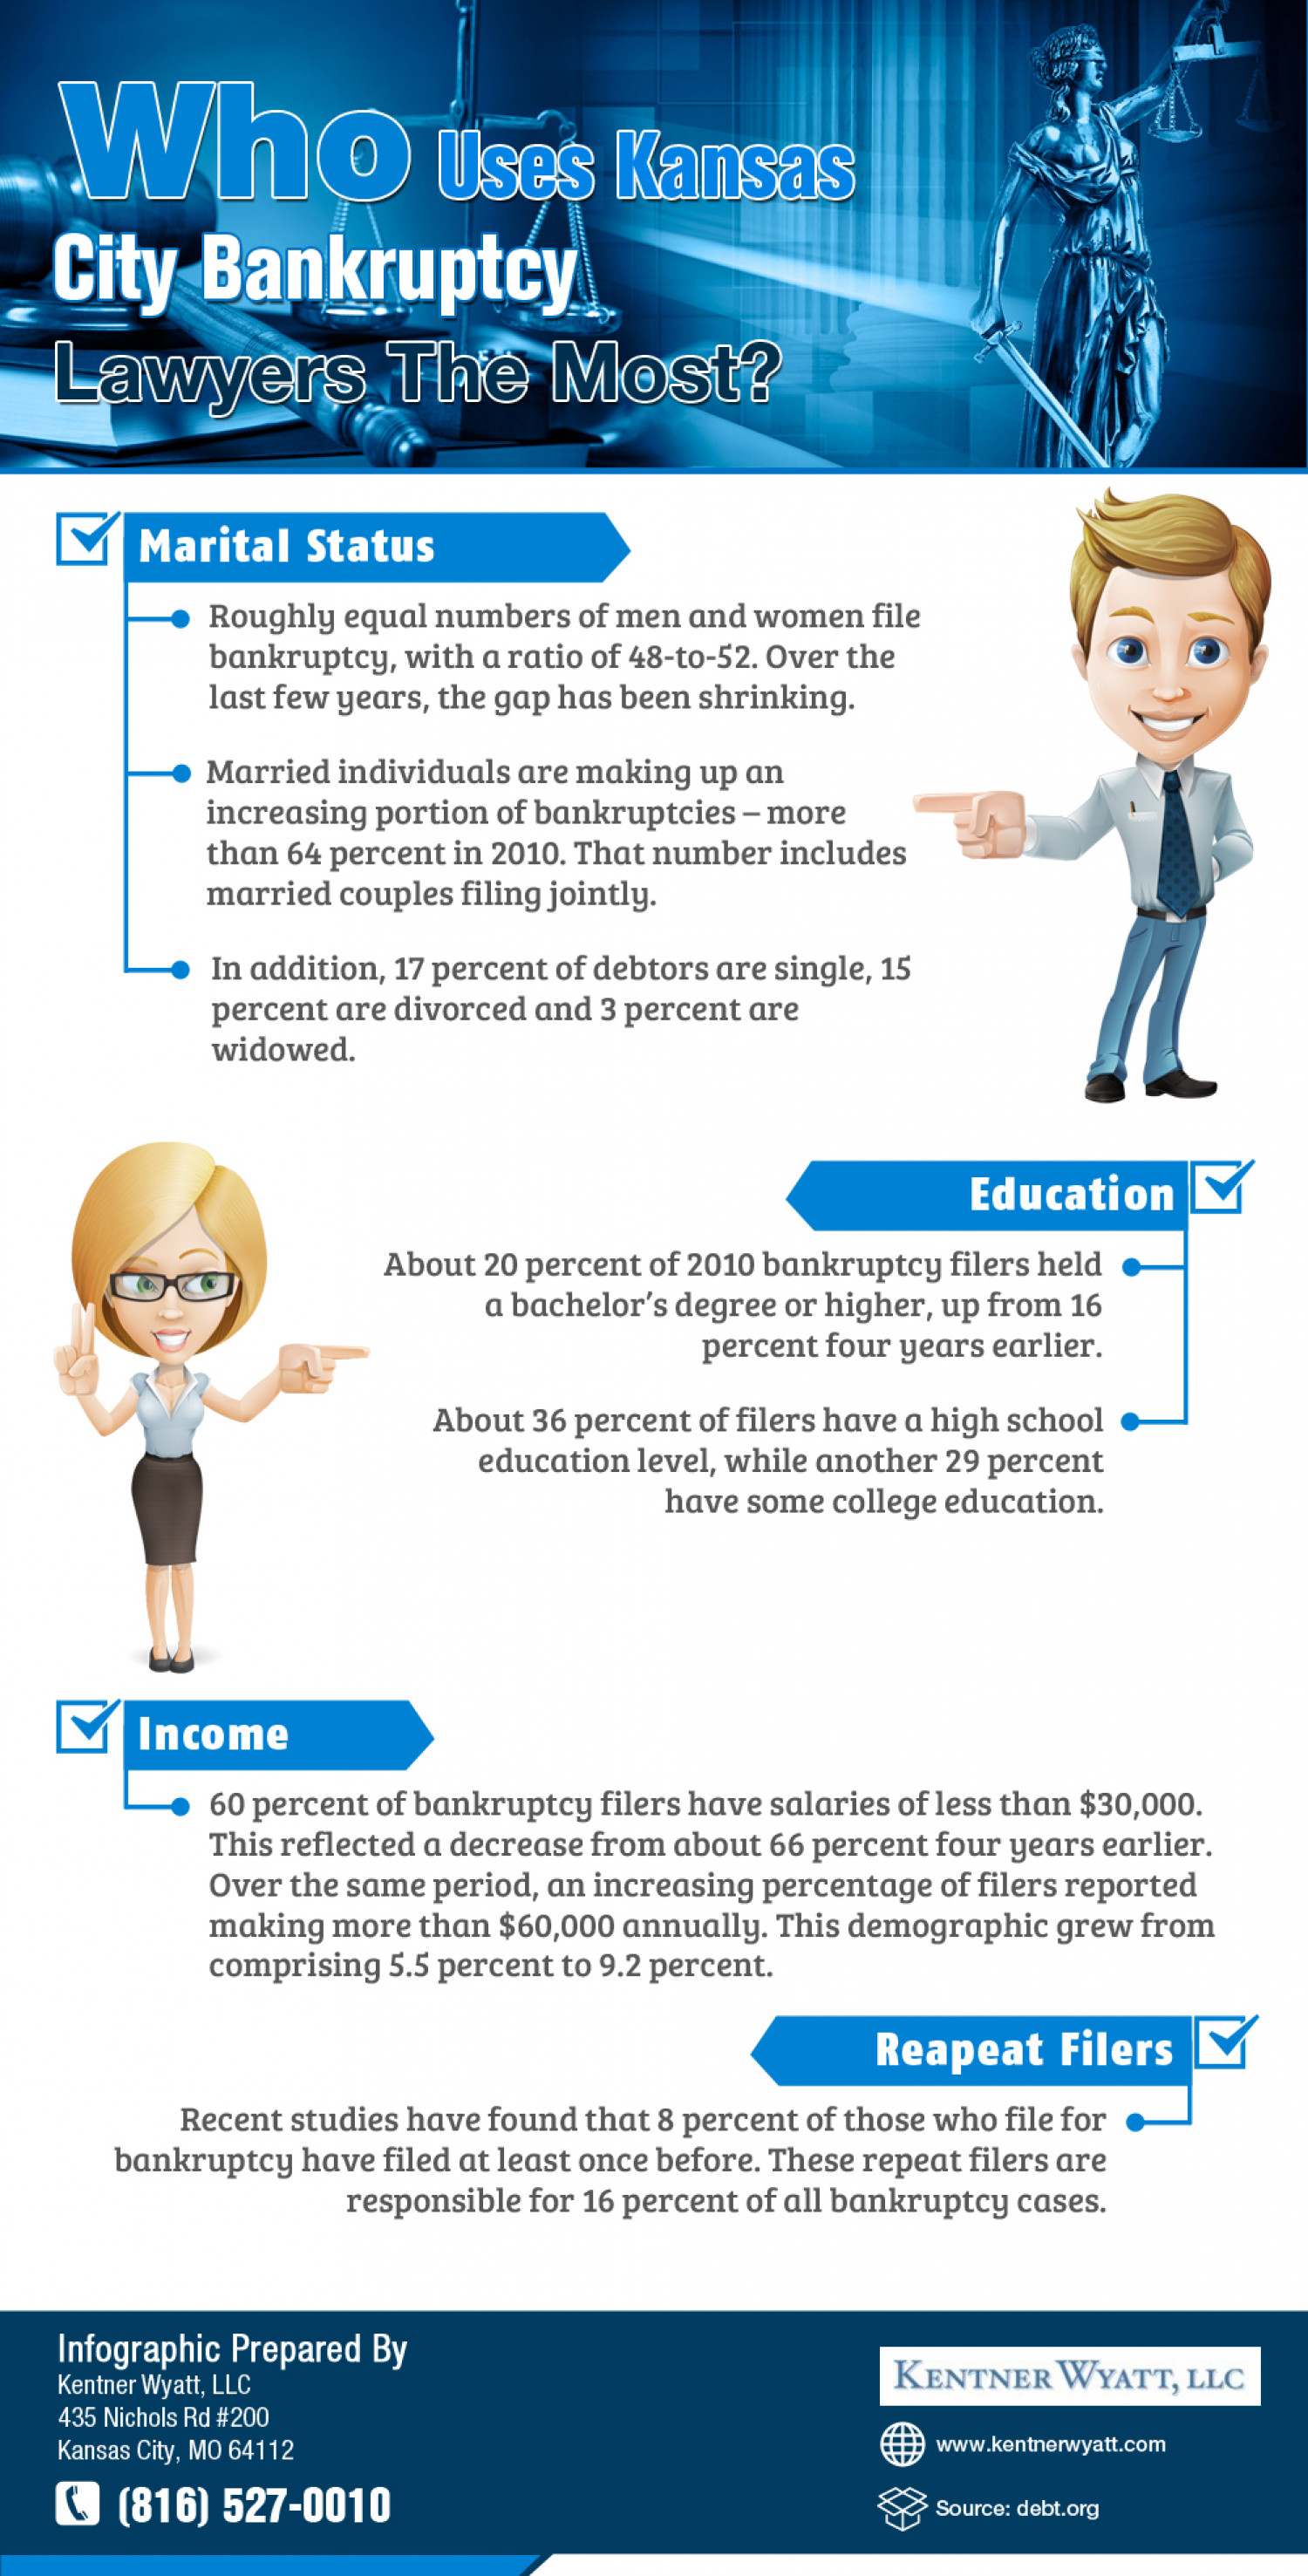 Top Users Of Kansas City Bankruptcy Lawyer Services Infographic